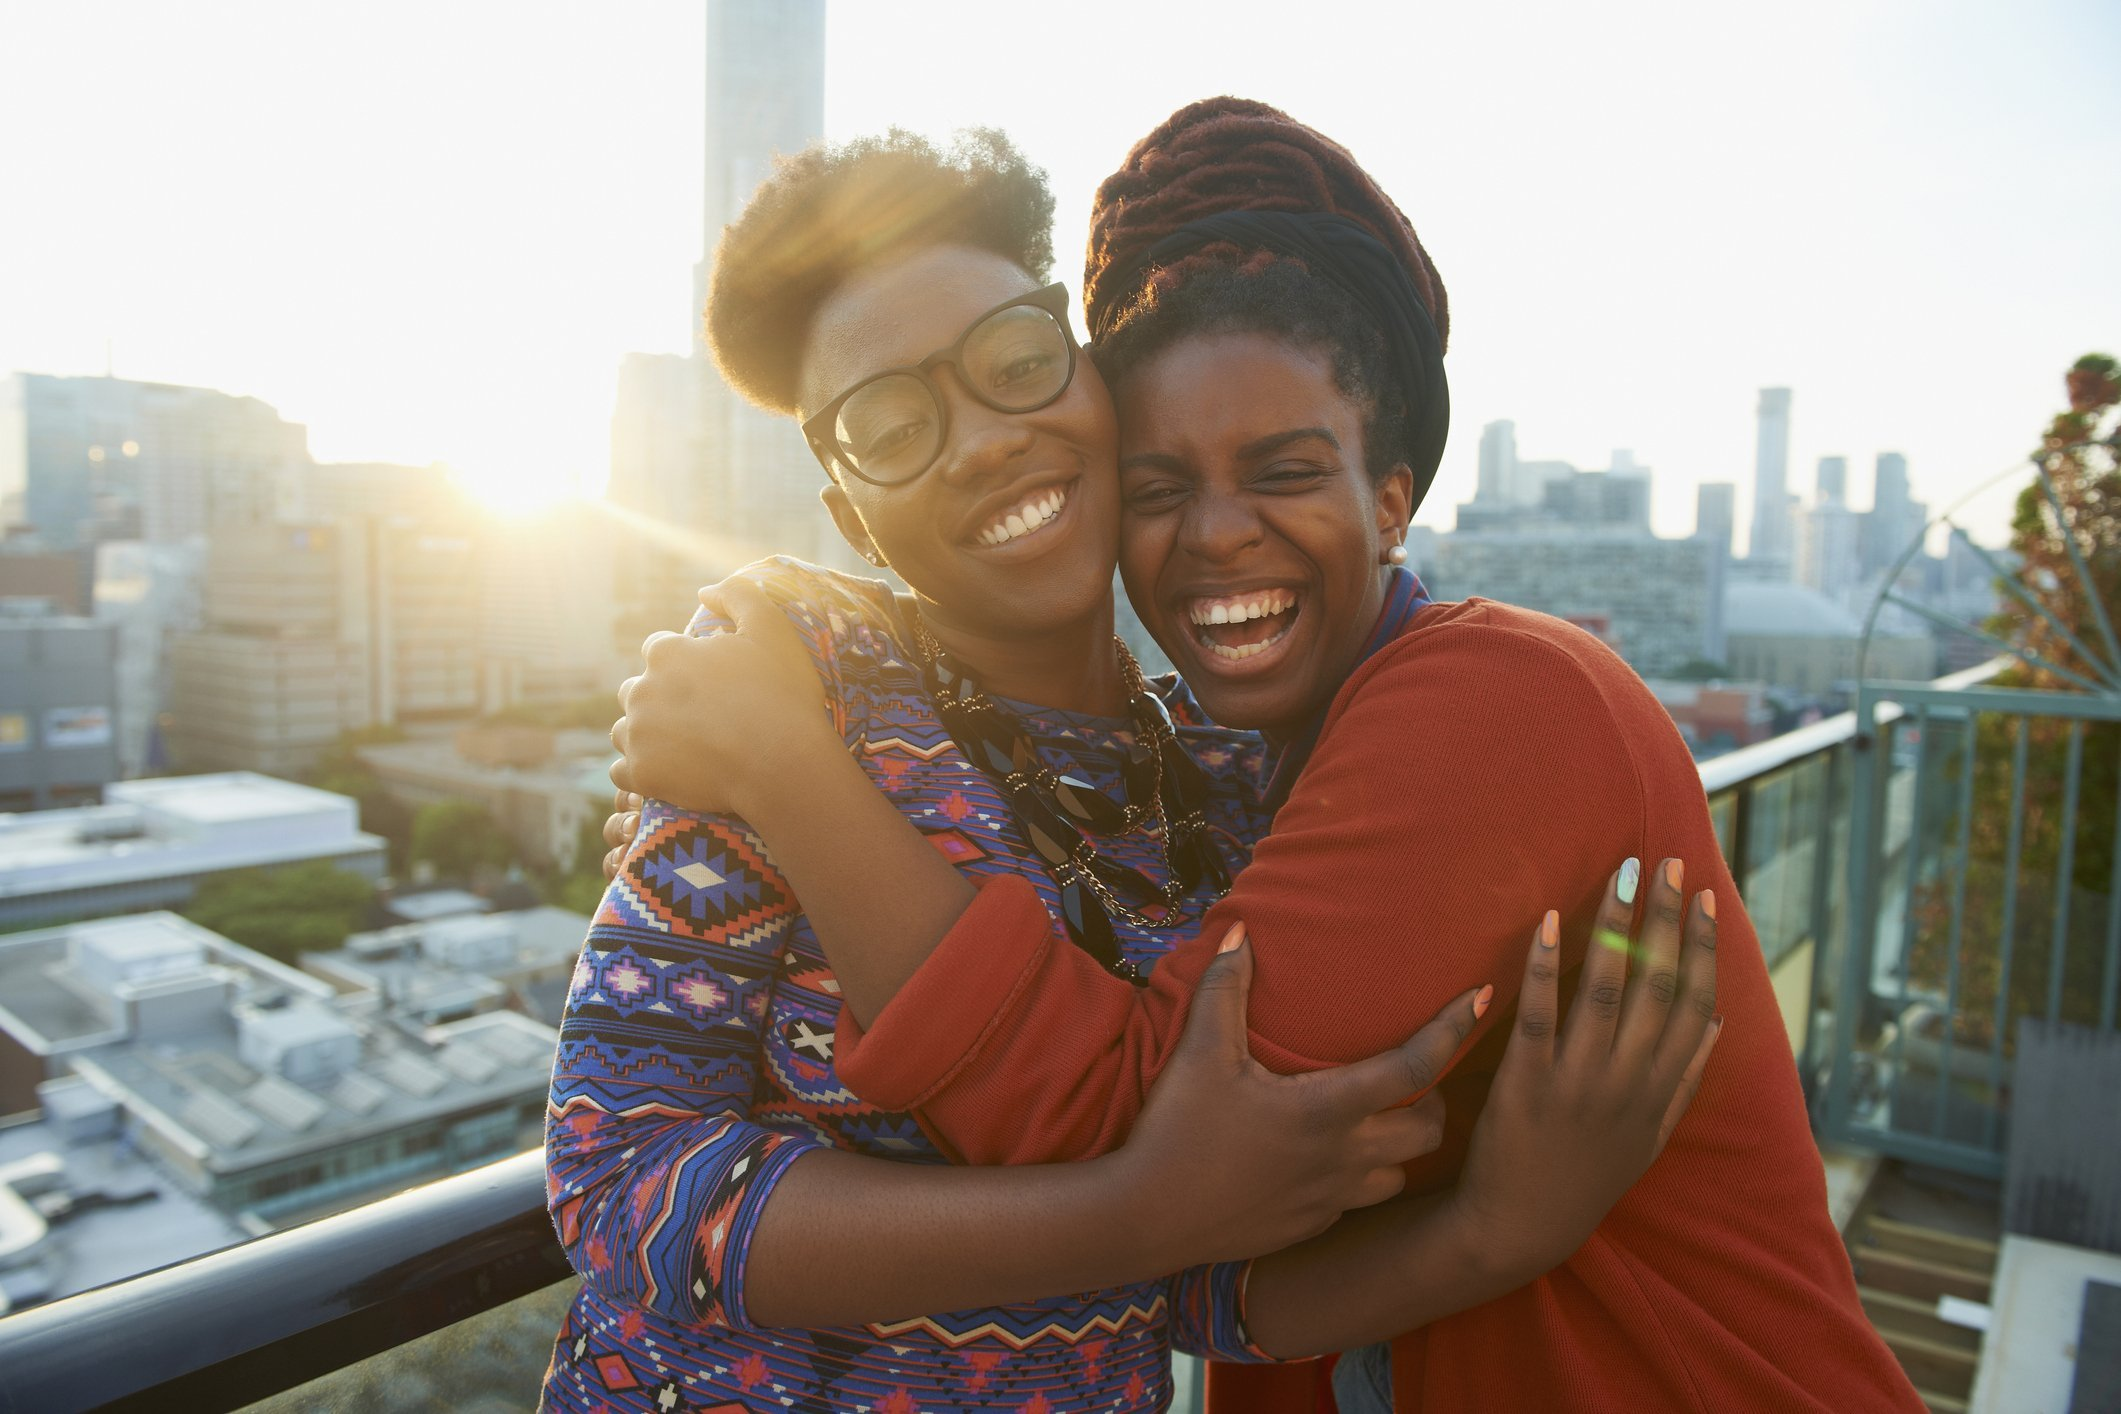 Sisters hugging on a rooftop in the city. | Photo: Getty Images